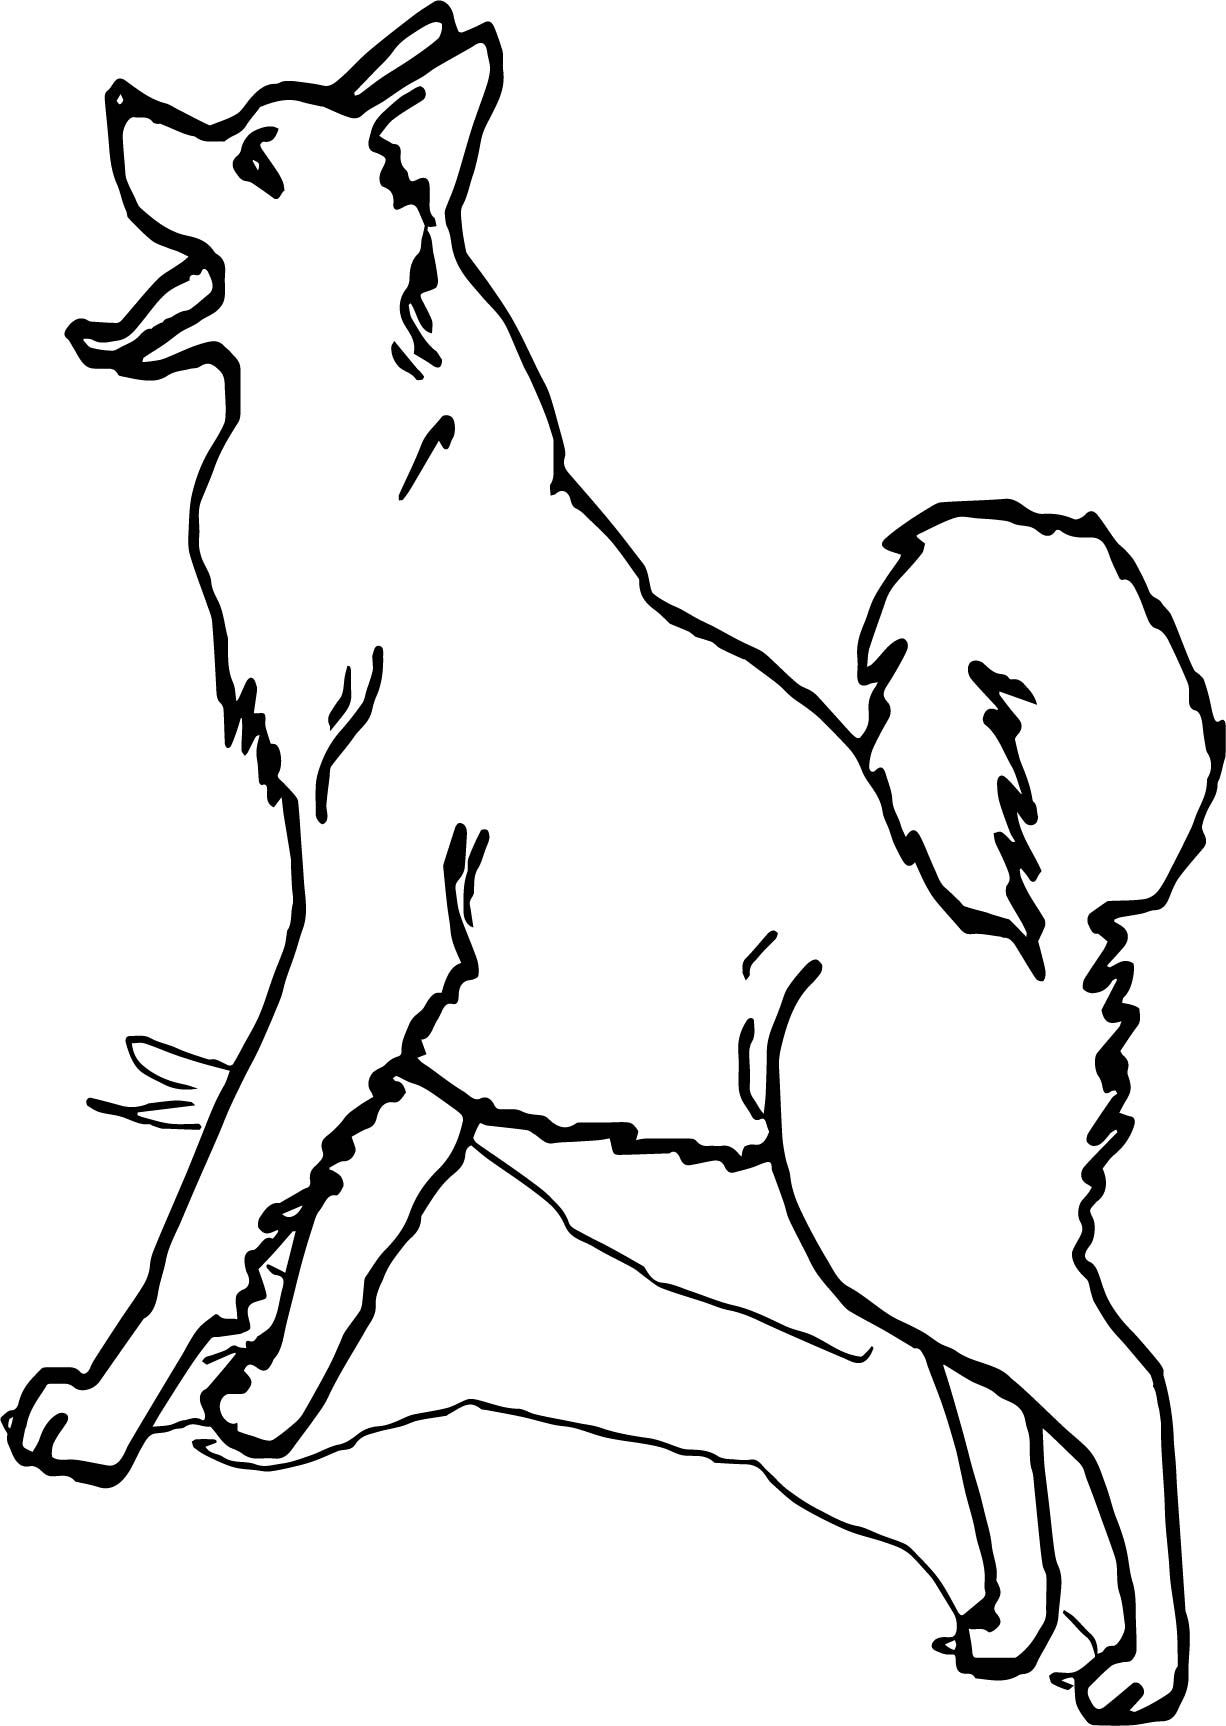 Cool Alaska Siberian Husky Coloring Page Dog Coloring Page Animal Coloring Pages Puppy Coloring Pages [ 1726 x 1226 Pixel ]